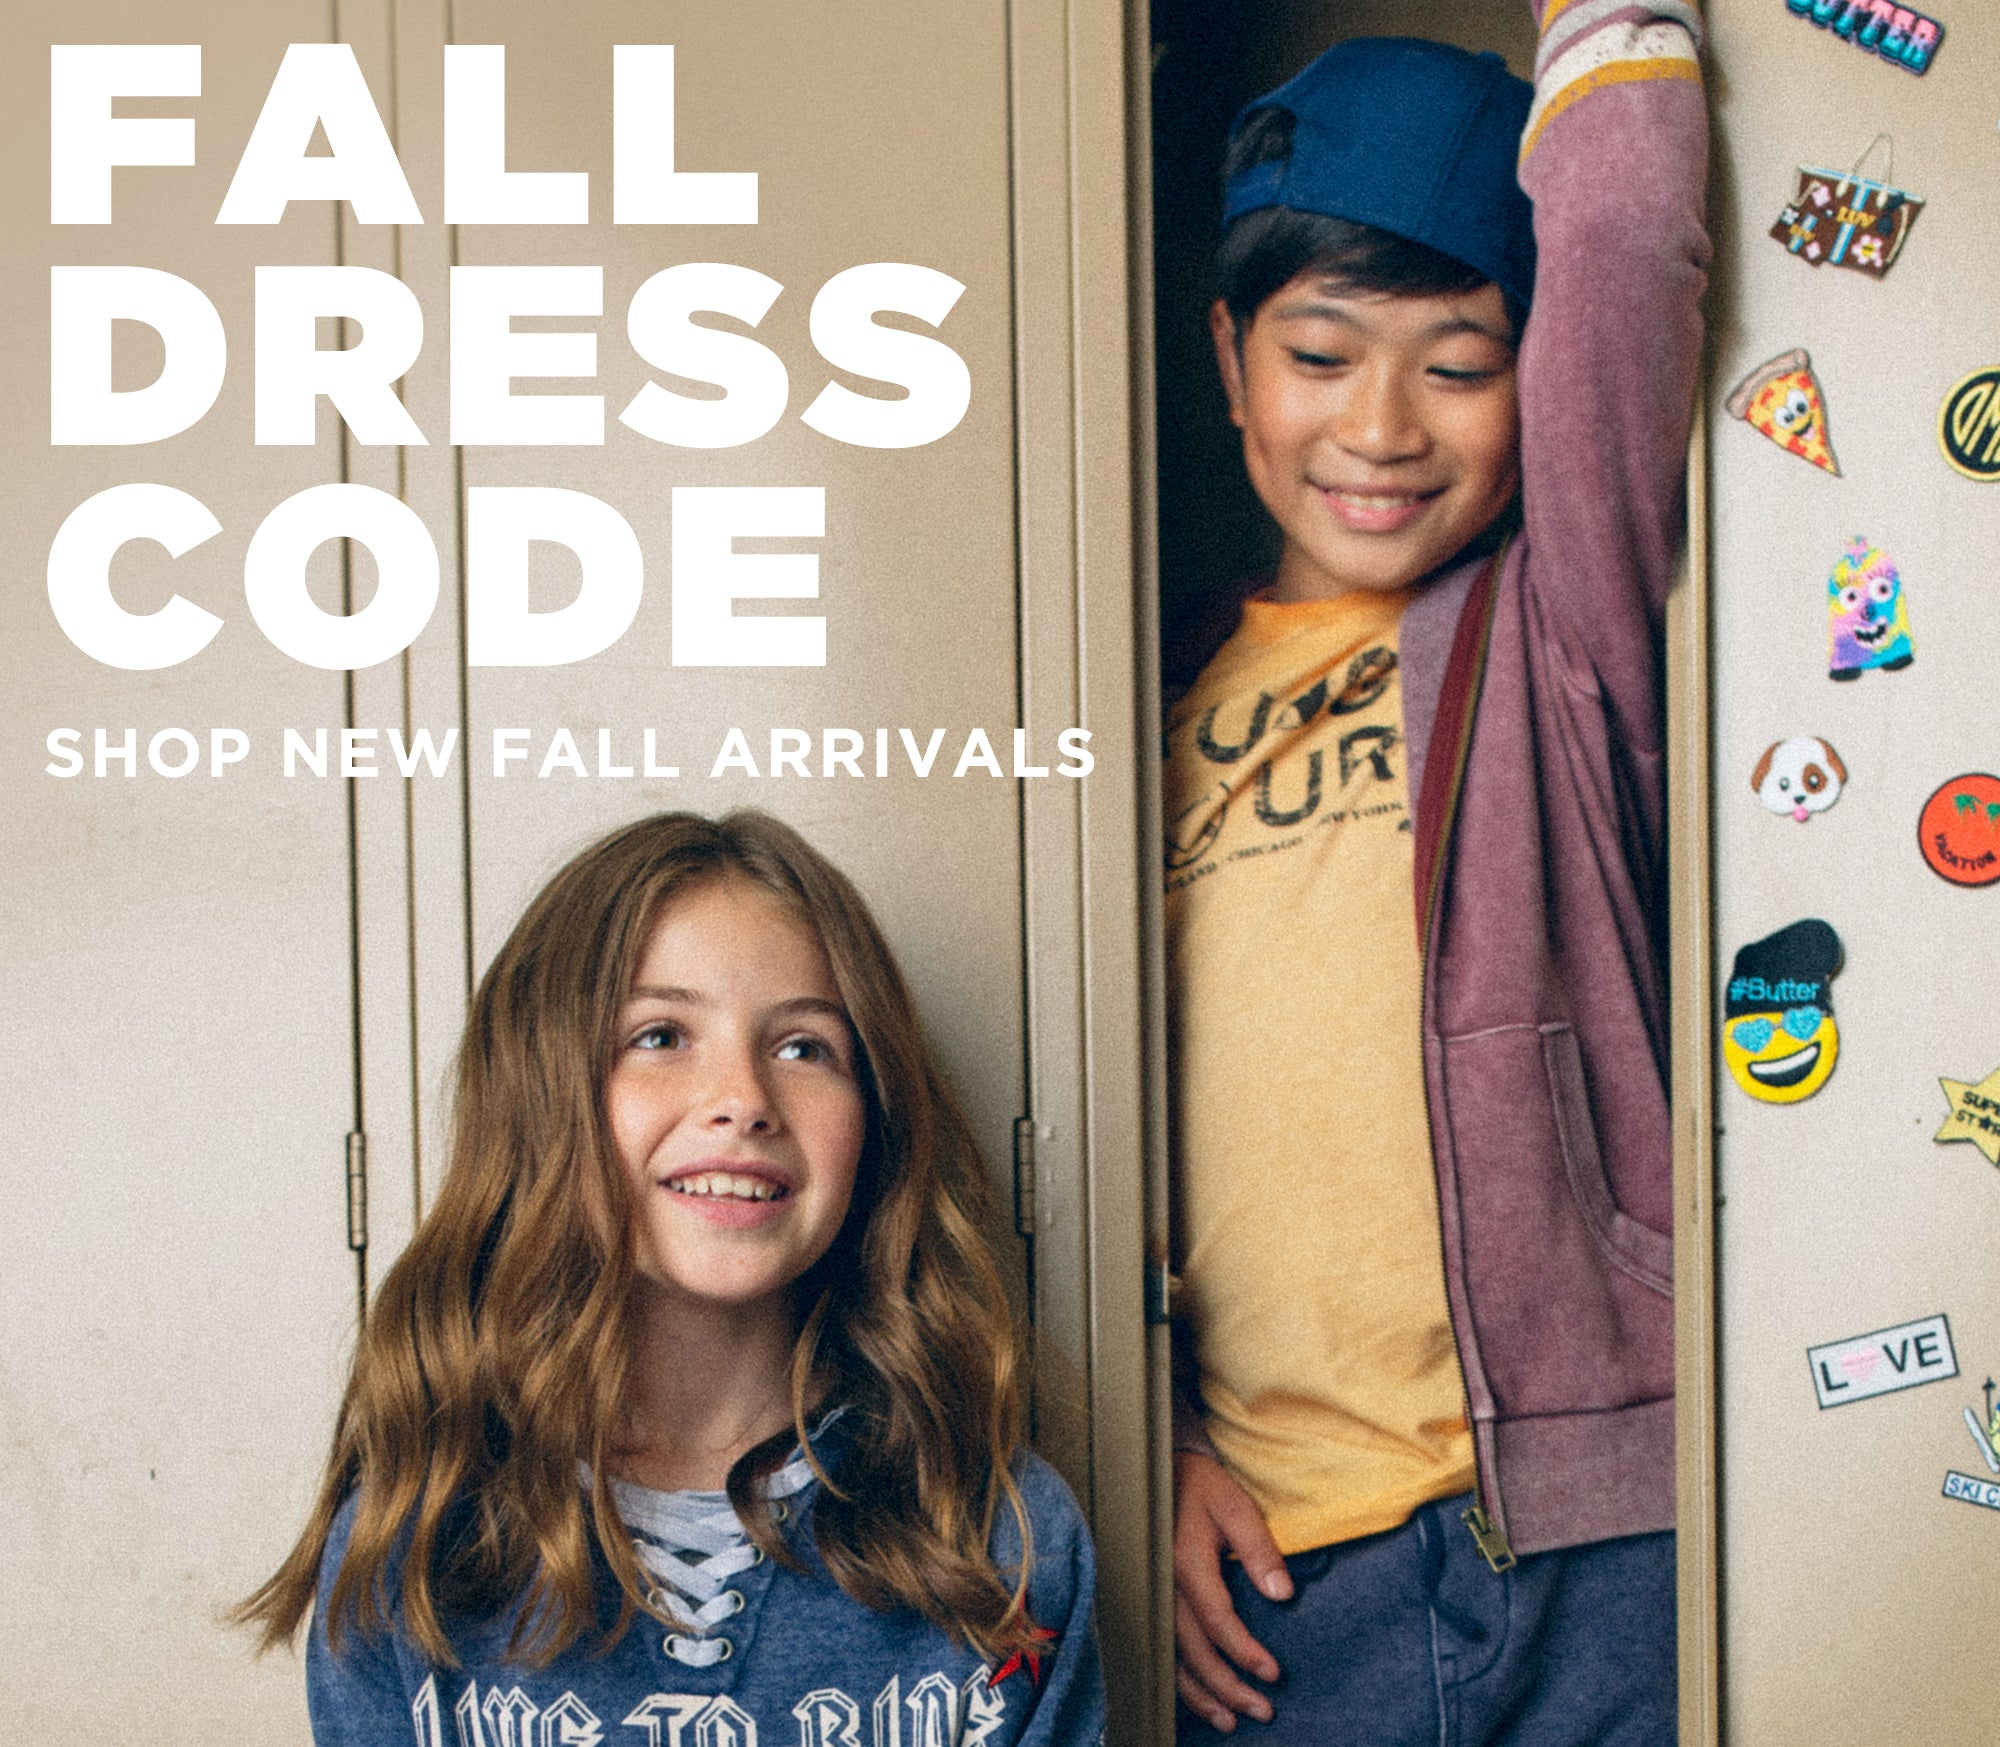 Fall Dress Code - Shop New Fall Arrivals